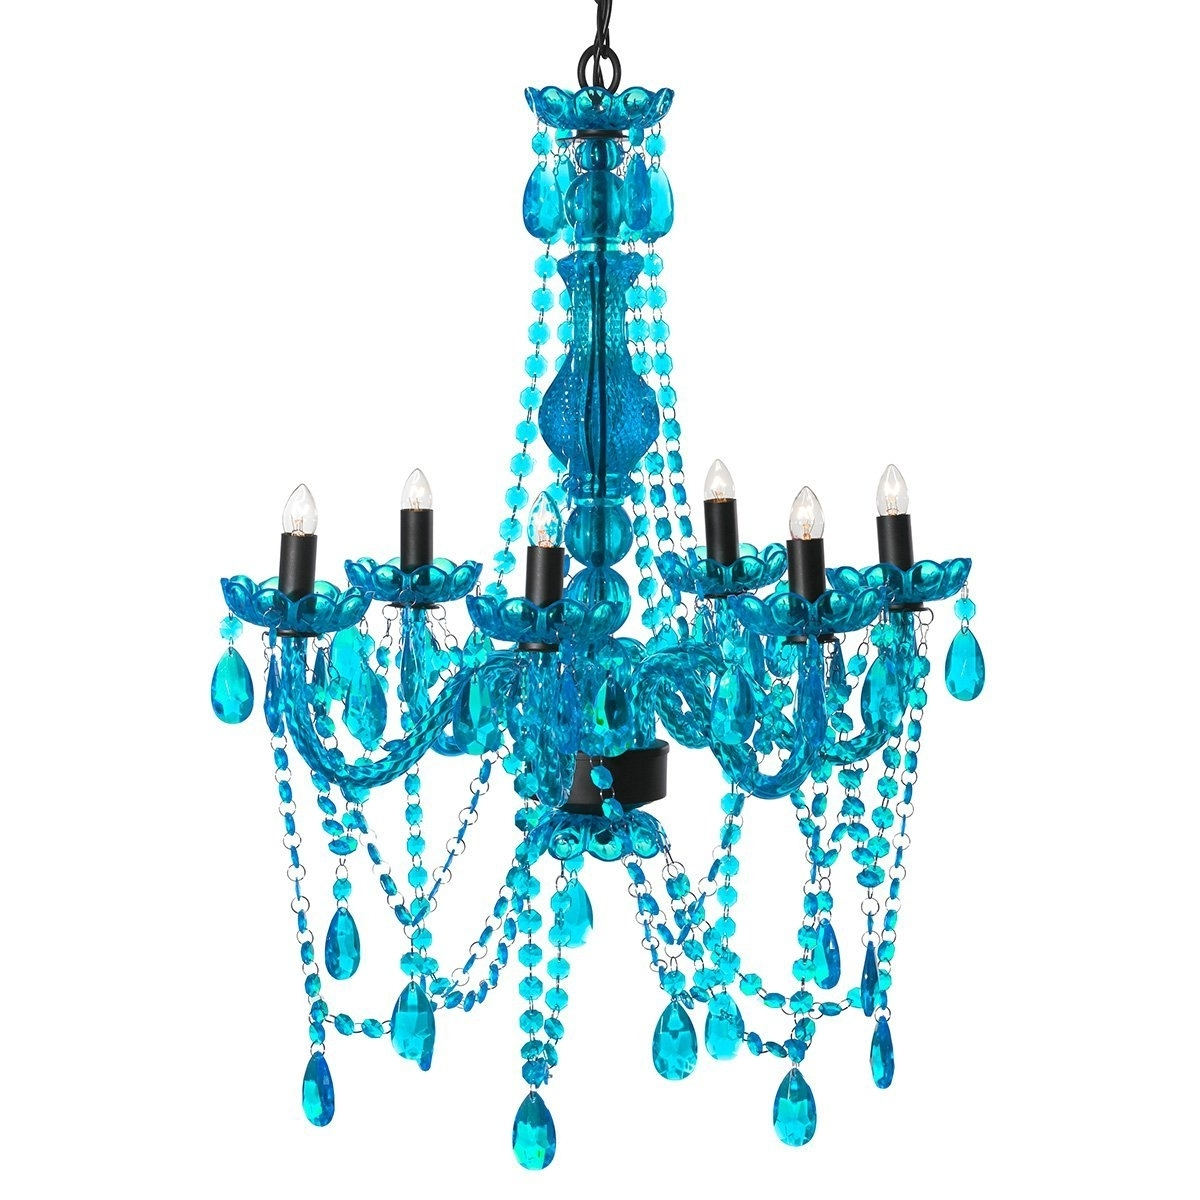 Amazon: 3C4G Chandelier, Turquoise: Home & Kitchen Throughout Best And Newest Turquoise Color Chandeliers (View 14 of 15)